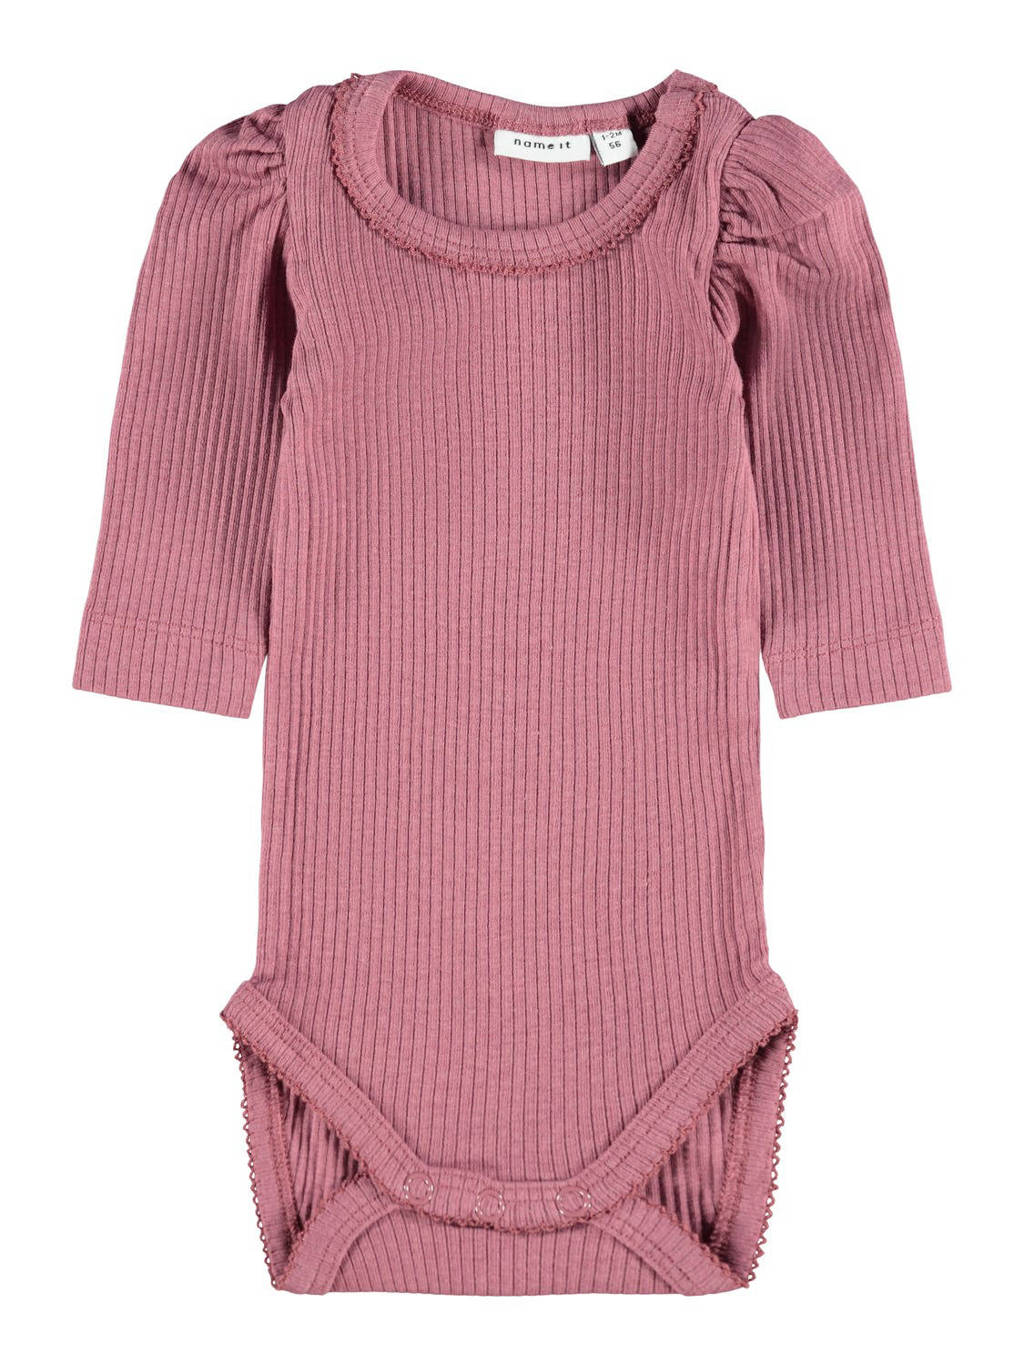 NAME IT BABY romper oudroze, Oudroze